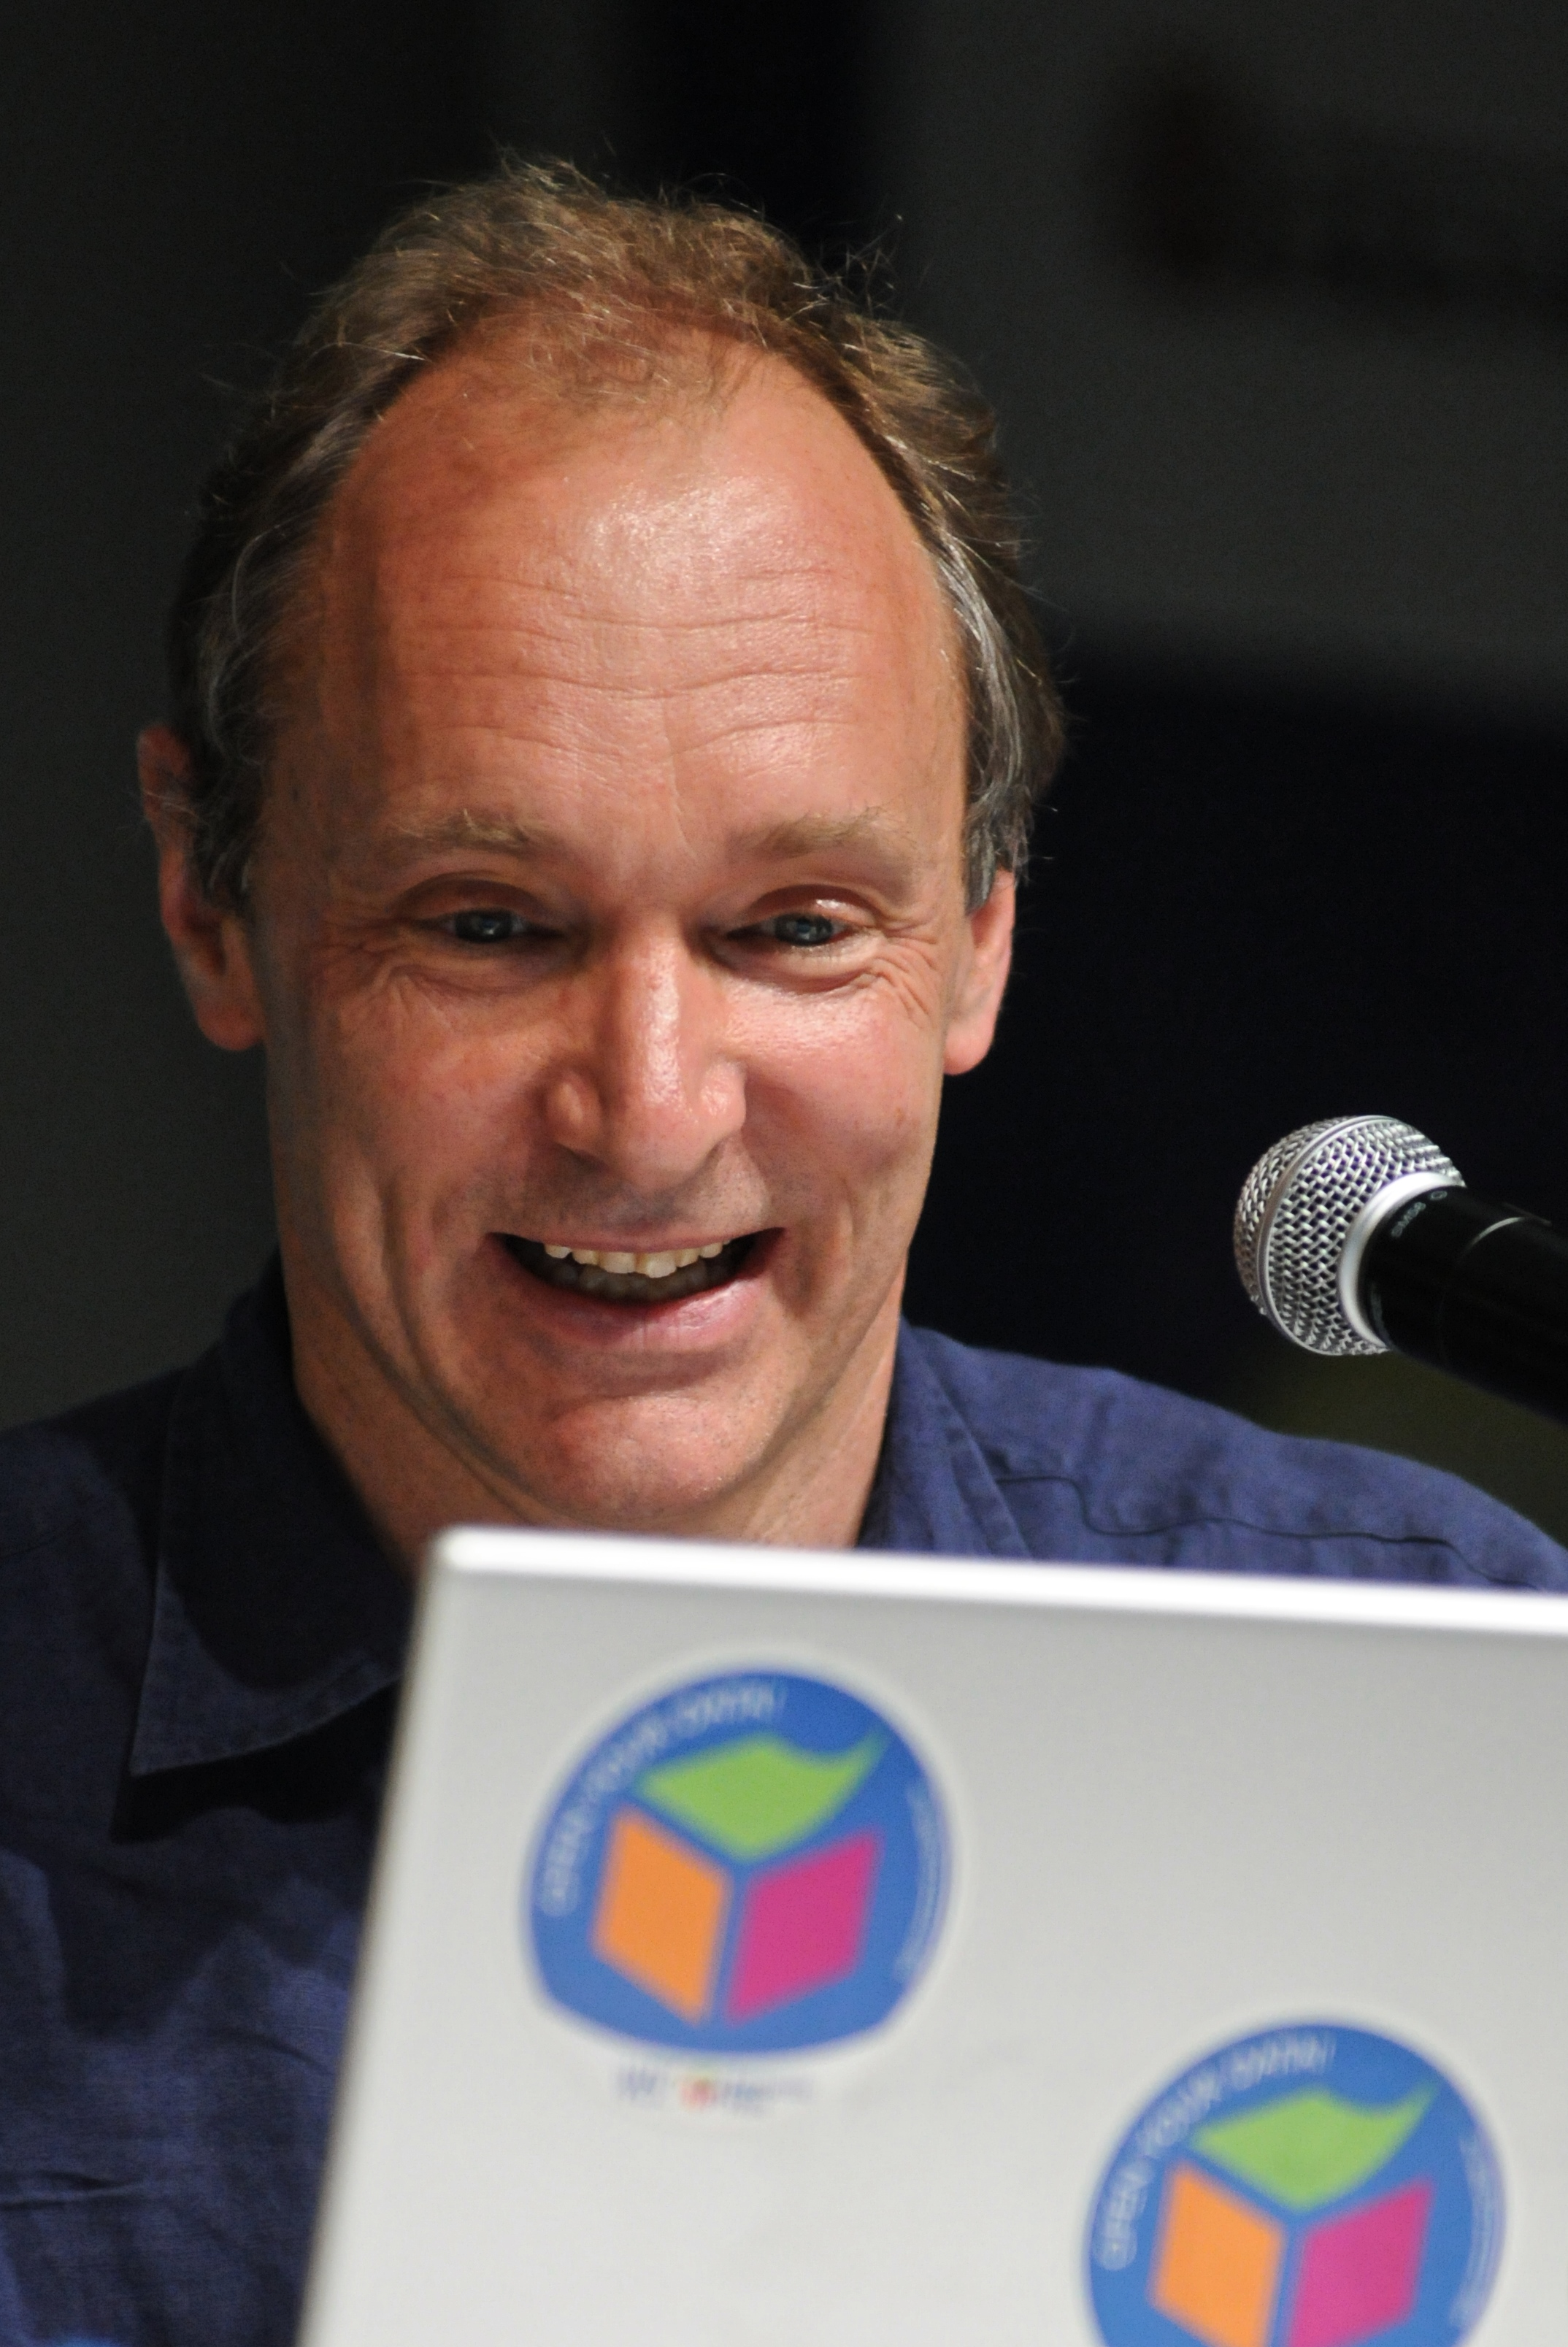 {{Information |Description	= Tim Berners-Lee at Campus Party Brasil, 2009, photo by Silvio Tanaka |Source	 = {{subst:Flickr source|url=http://flickr.com/photos/89142790@N00/3212369167|title=Tim Berners-Lee}} |Date	 = 2009-01-20 13:14:30 |Author	 = {{subst